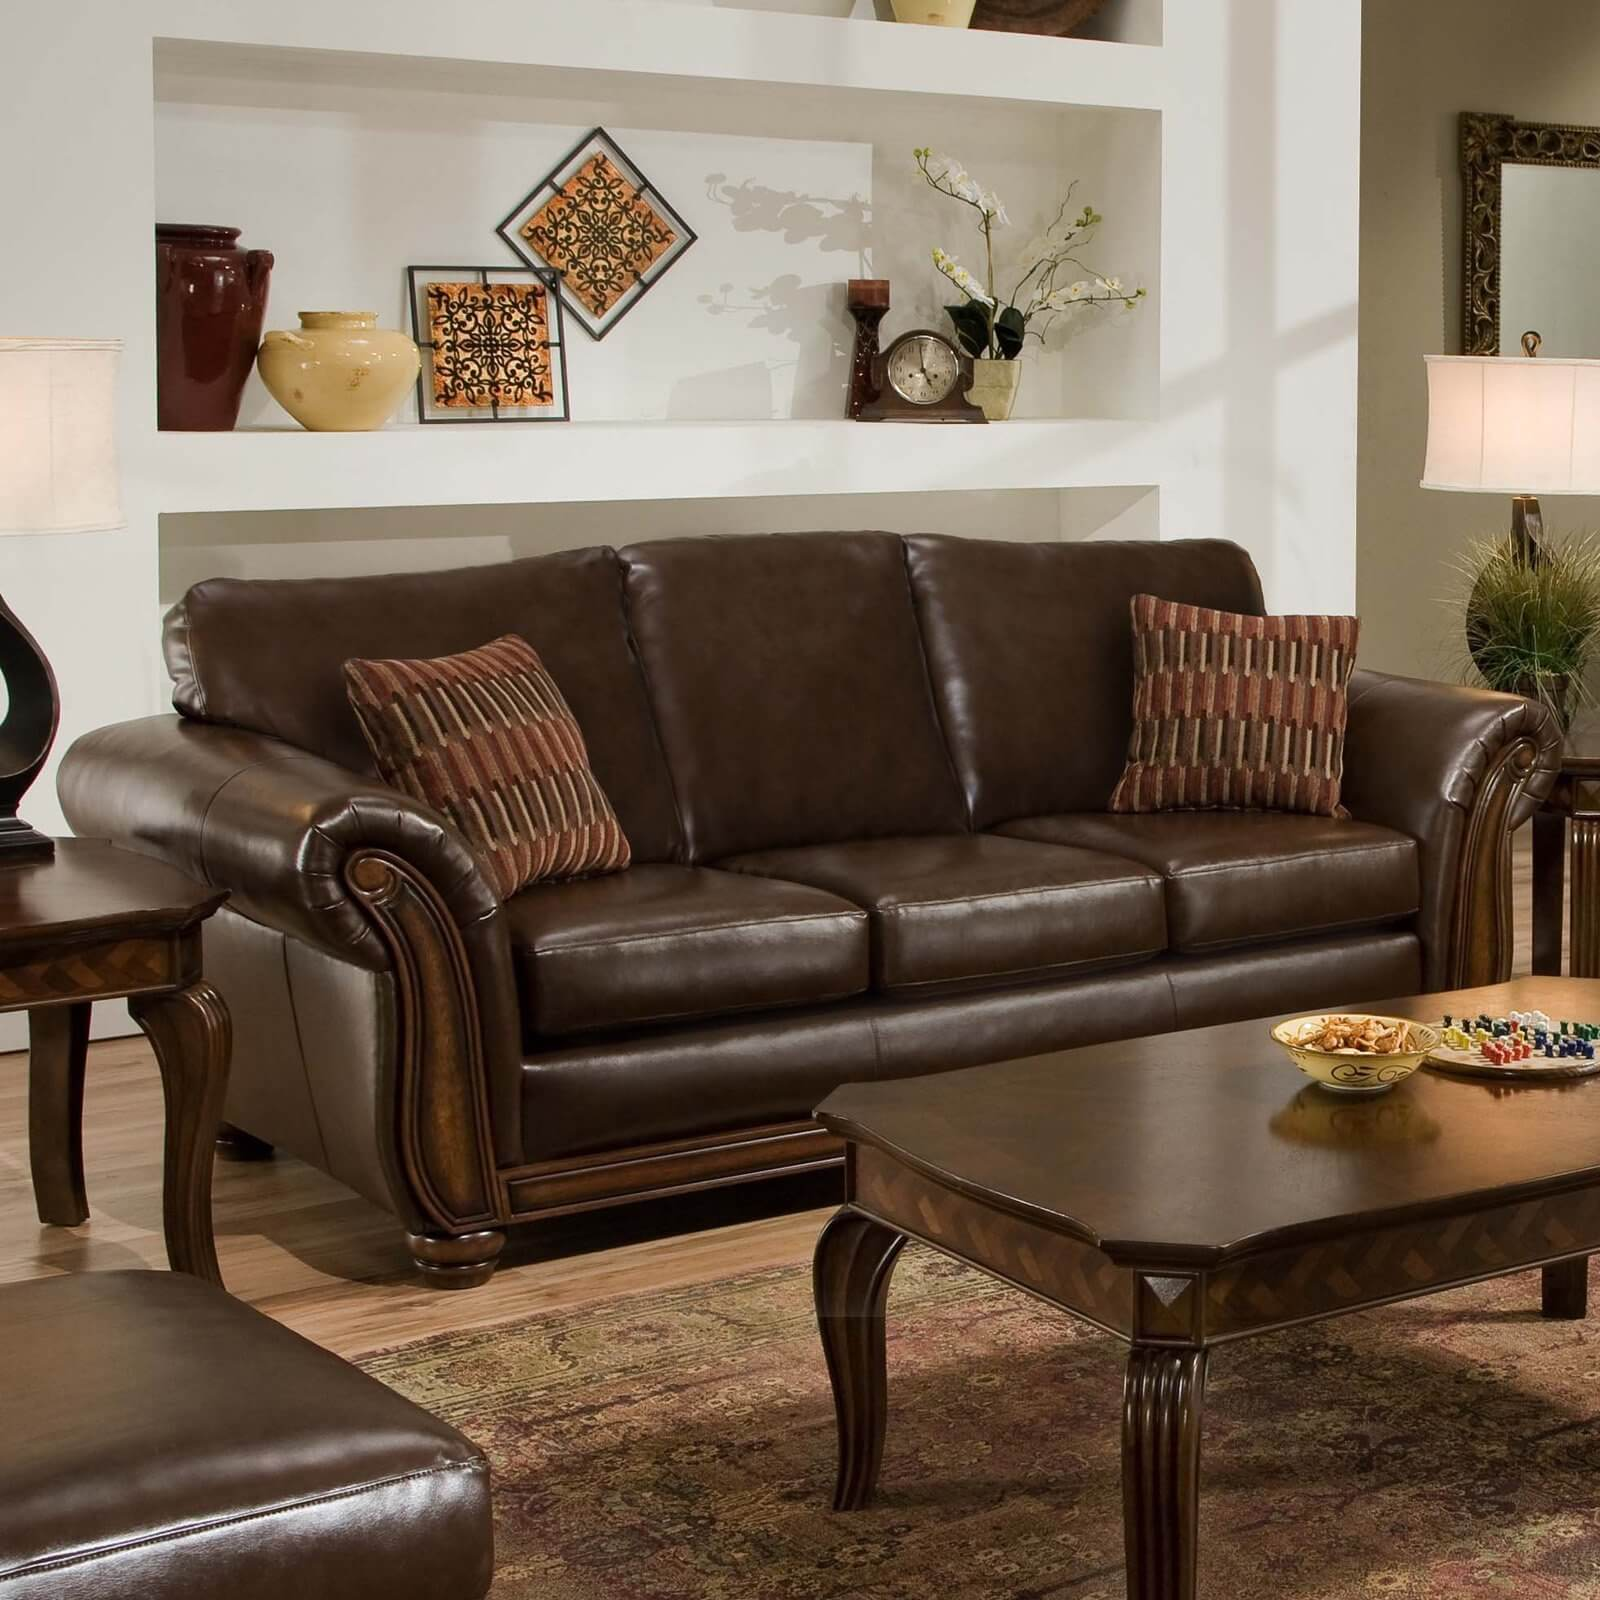 20 Comfortable Living Room Sofas (Many Styles)